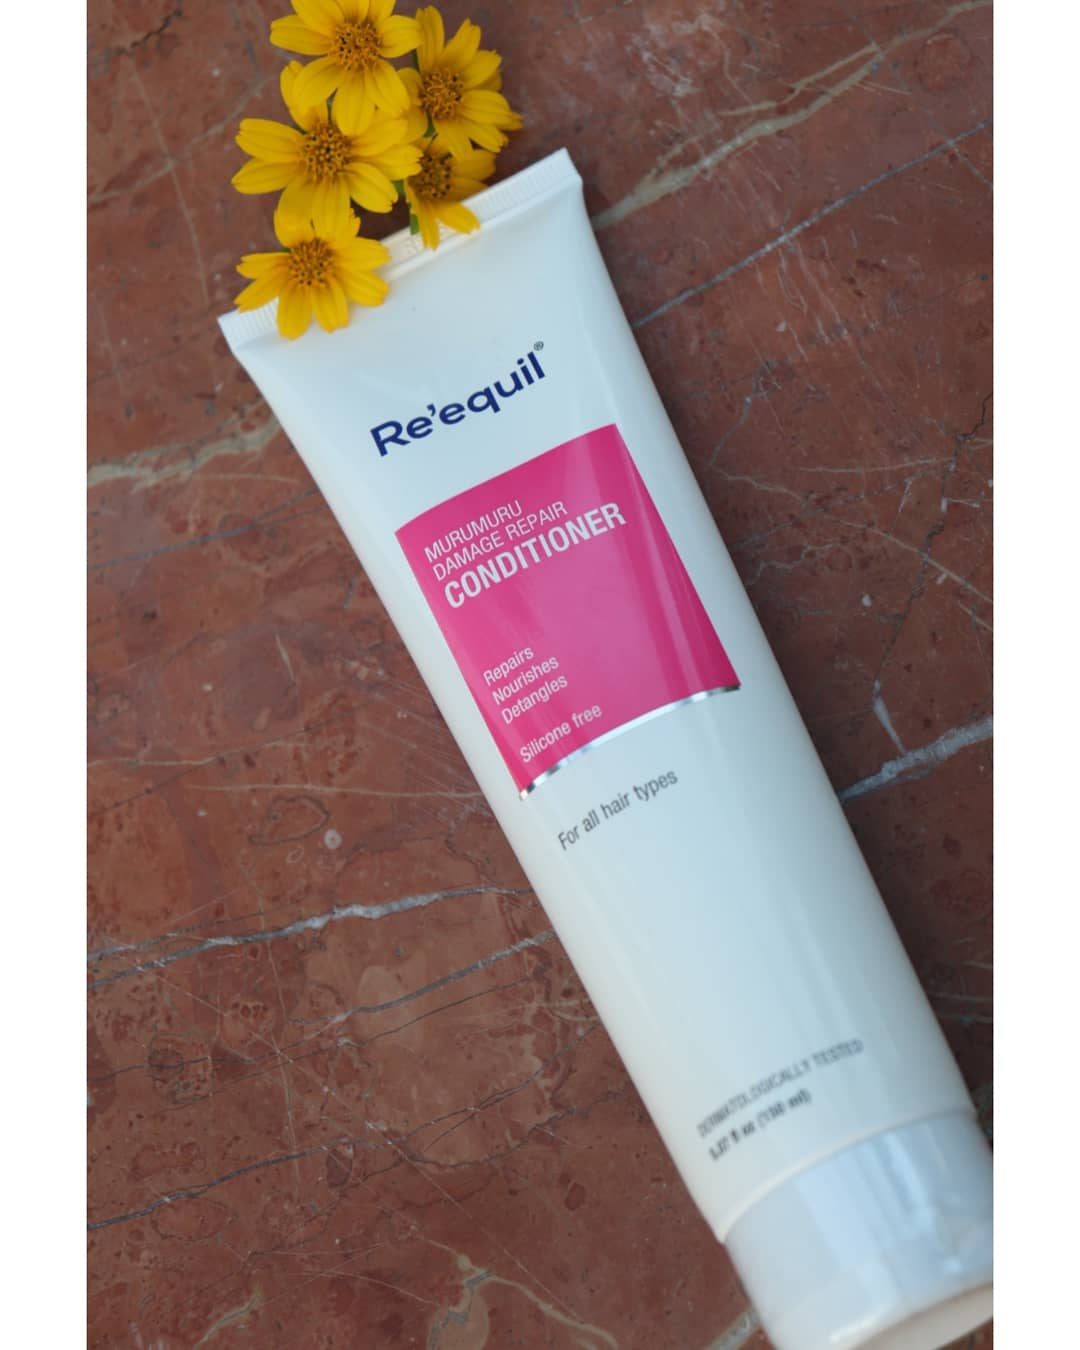 Re'equil Murumuru Damage Repair Conditioner-Amazing product, makes my hair so soft and shiny-By niharikadubey-2